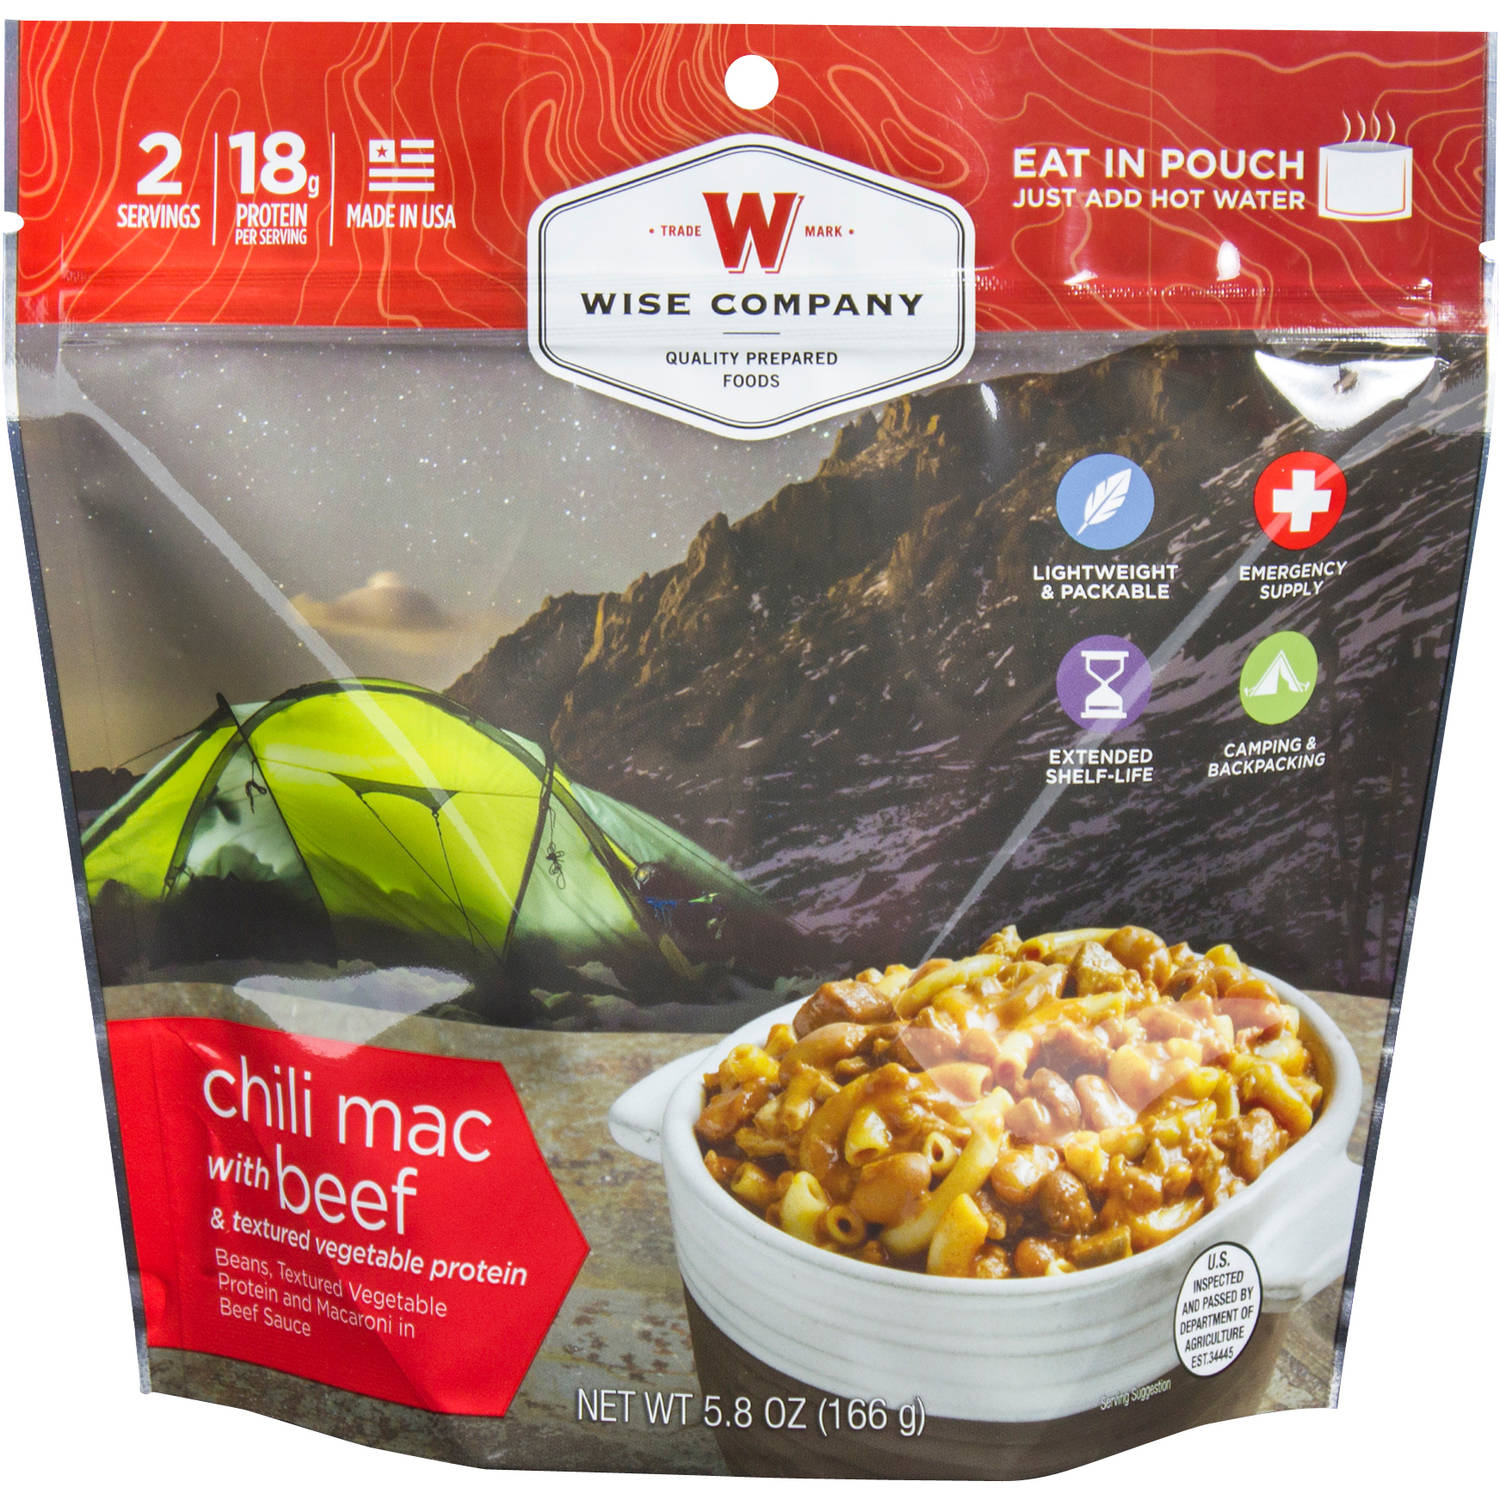 Wise Company Chili Mac with Beef & Textured Vegetable Protein Prepared Meal, 5.5 oz